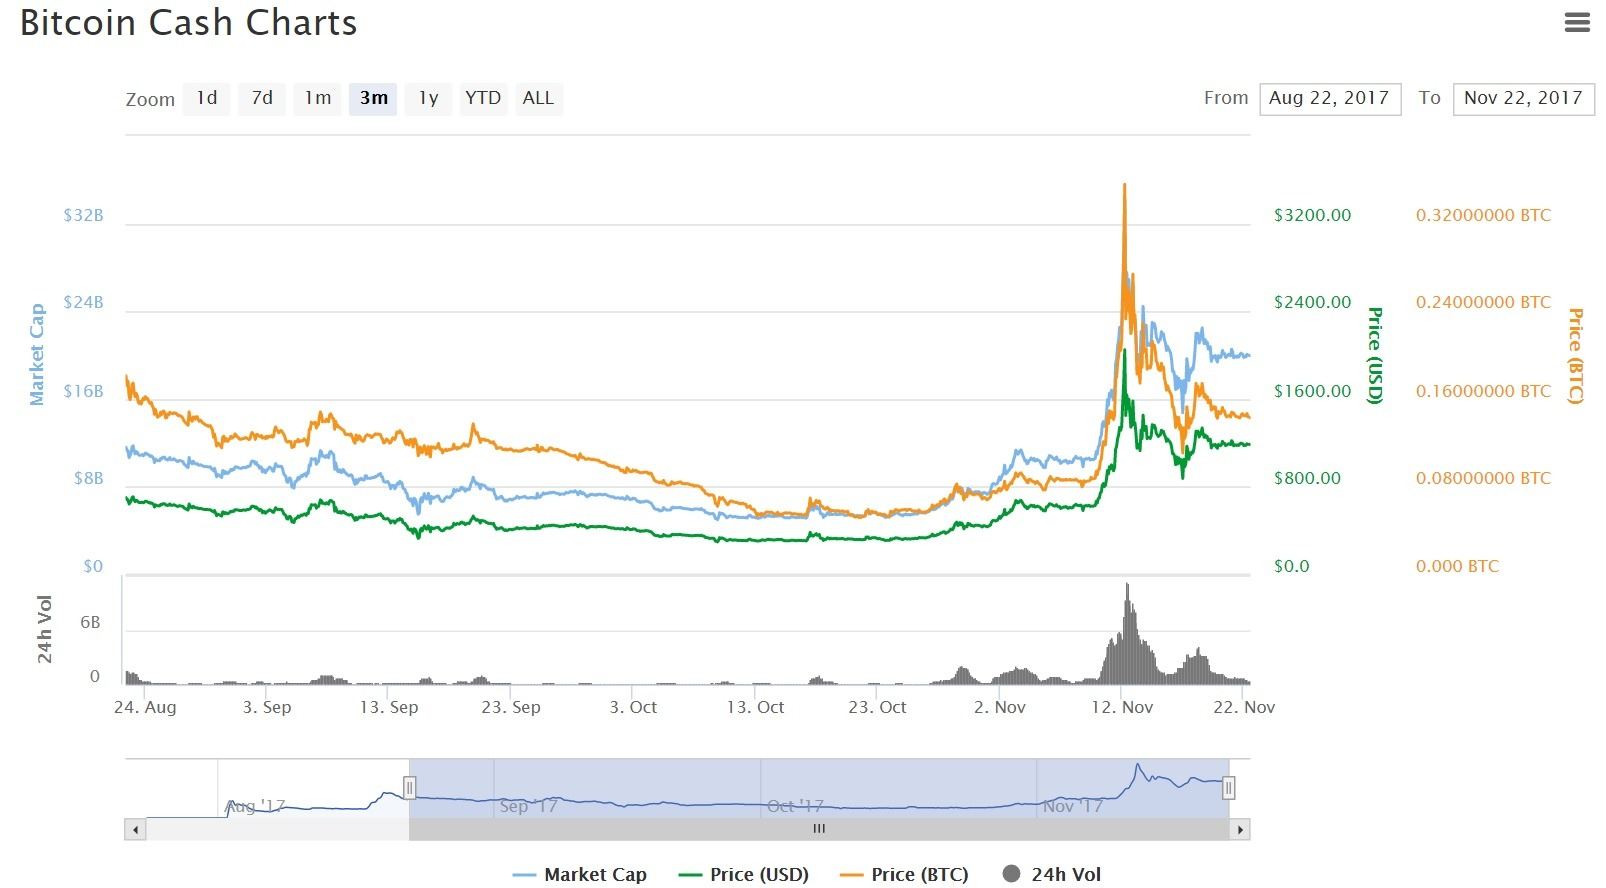 Bitcoin Predictions 2018 >> Value Of Bitcoin Cash Predictions For 2018 And Beyond